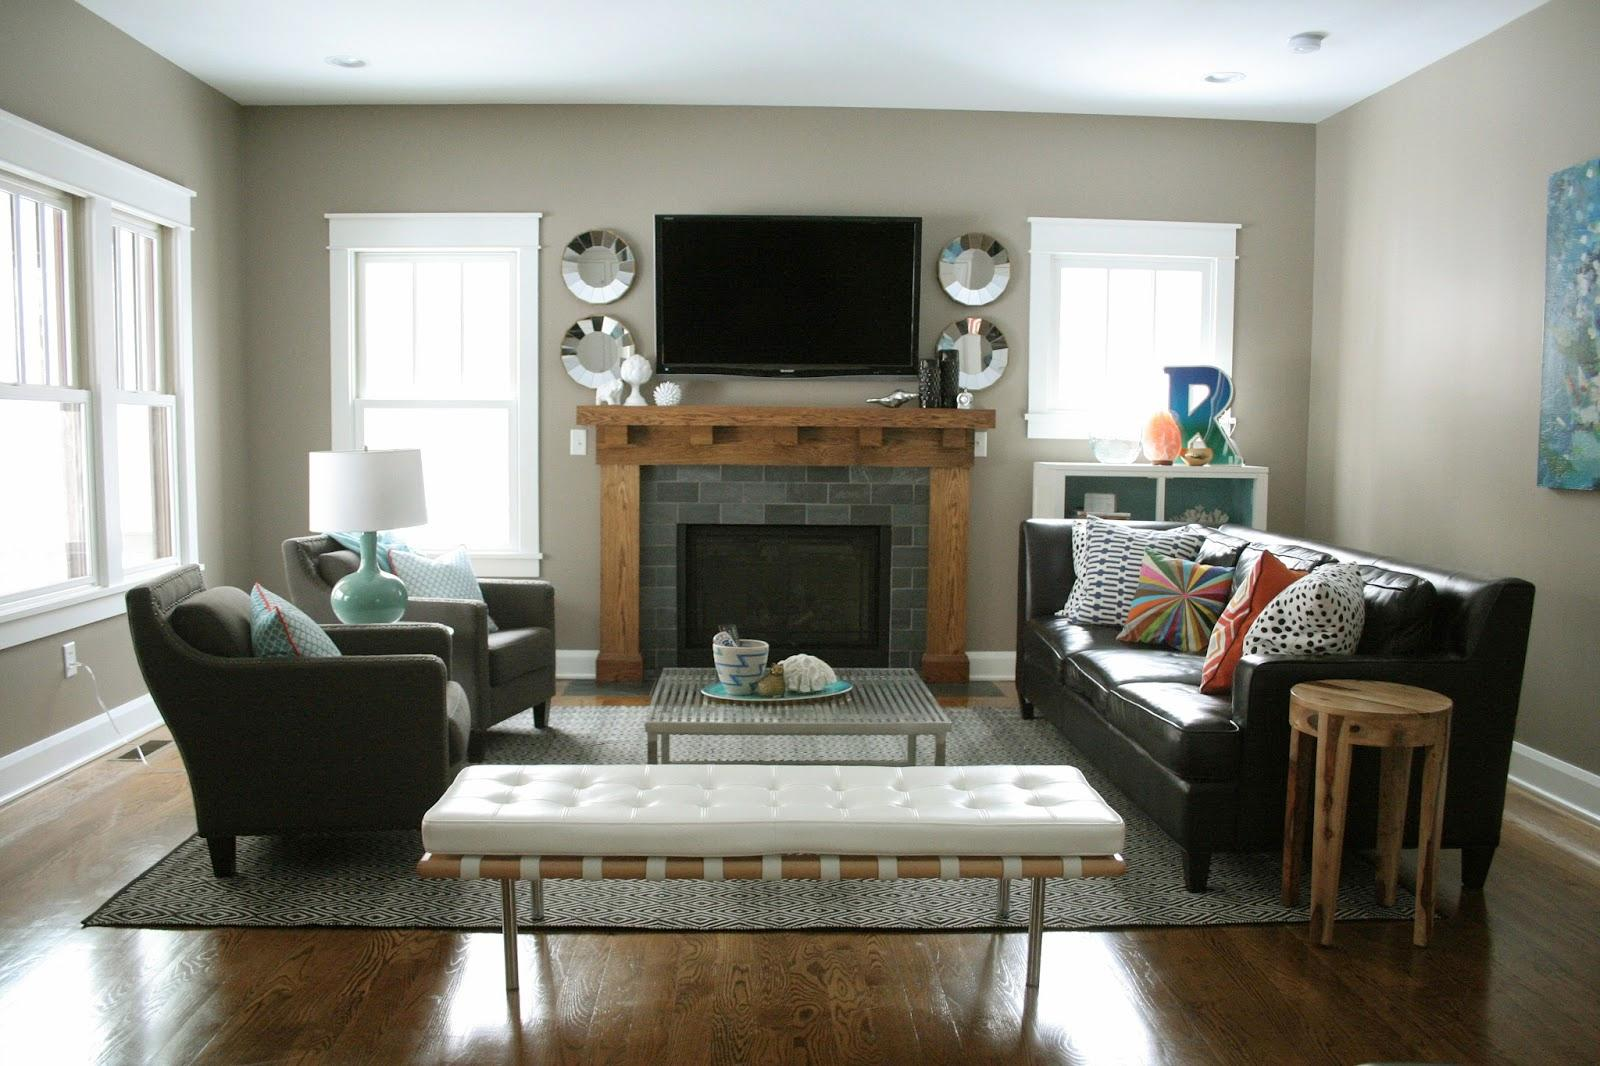 new lounge ideas ... new living room ideas entrancing with black leather upholstered sofa OEFNZCY